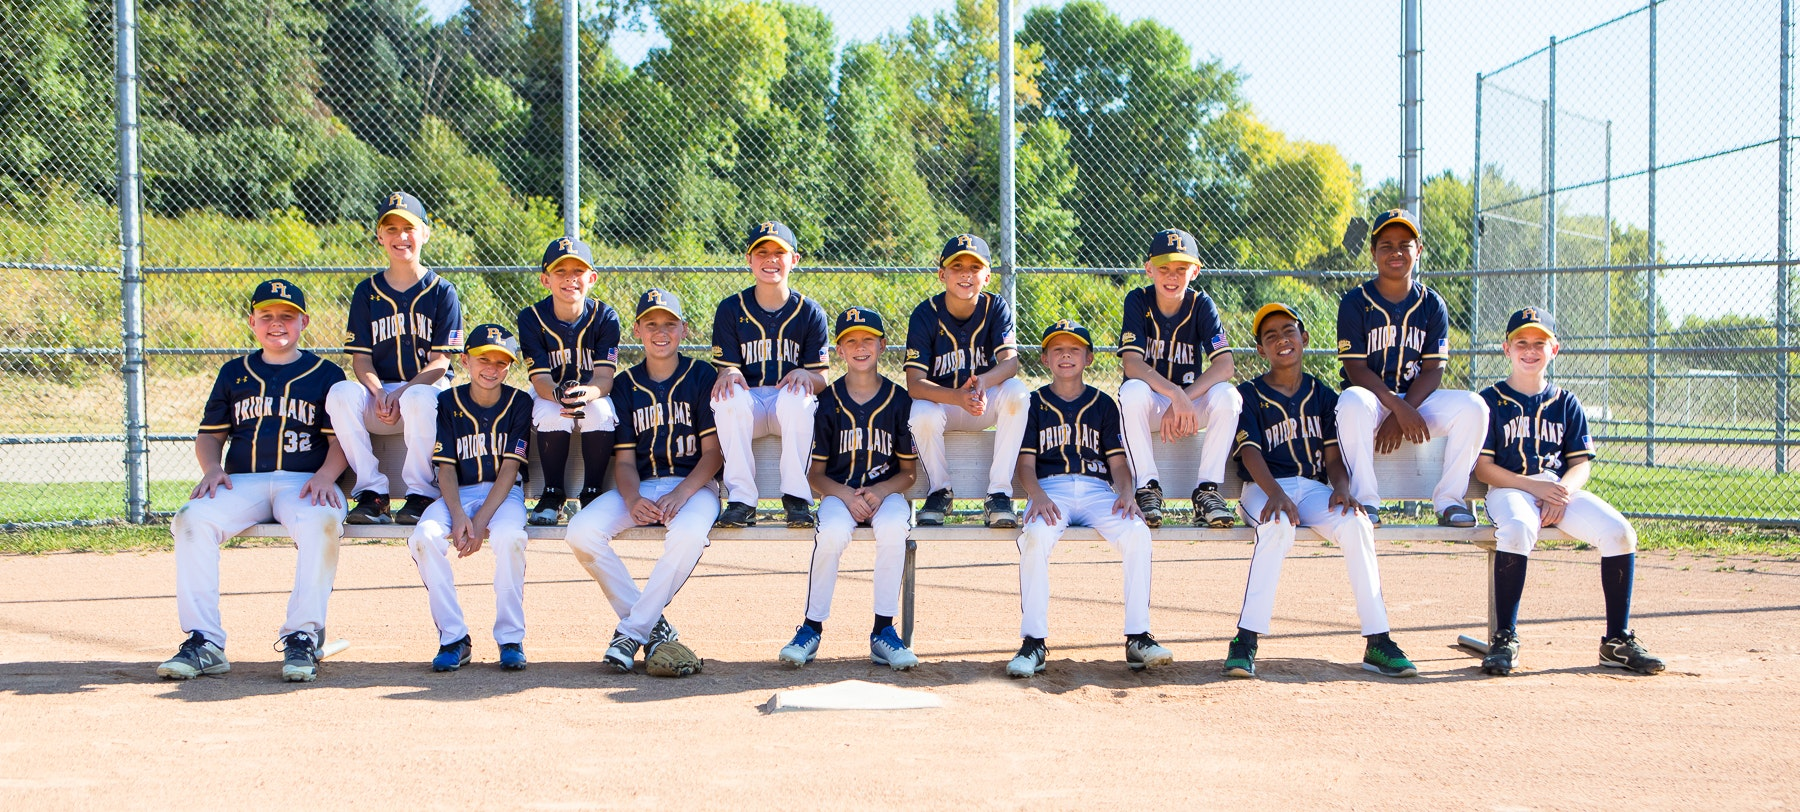 How the Prior Lake Cooperstown raised $682 for Cooperstown